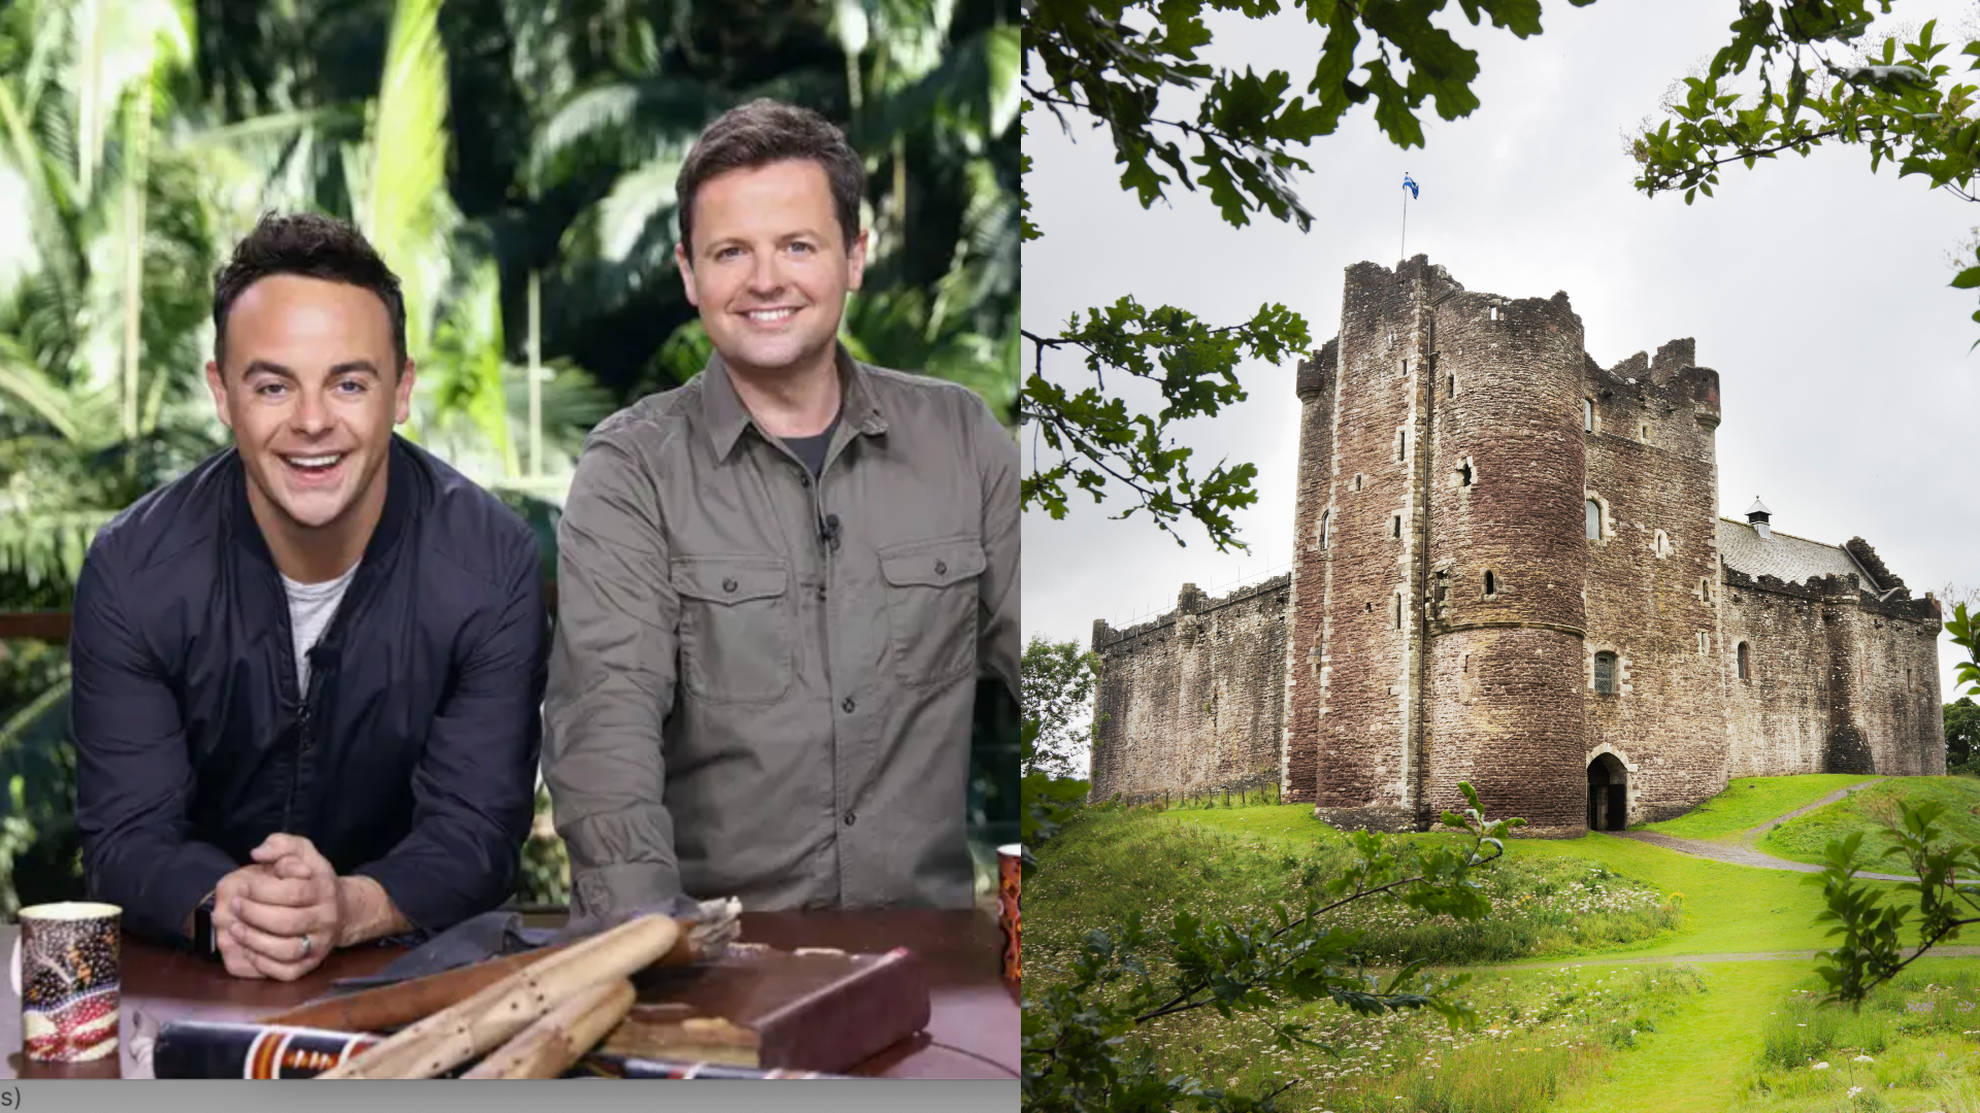 I M A Celebrity 2020 Series To Be Filmed At Ruined Castle In The Uk Itv Announces Smooth